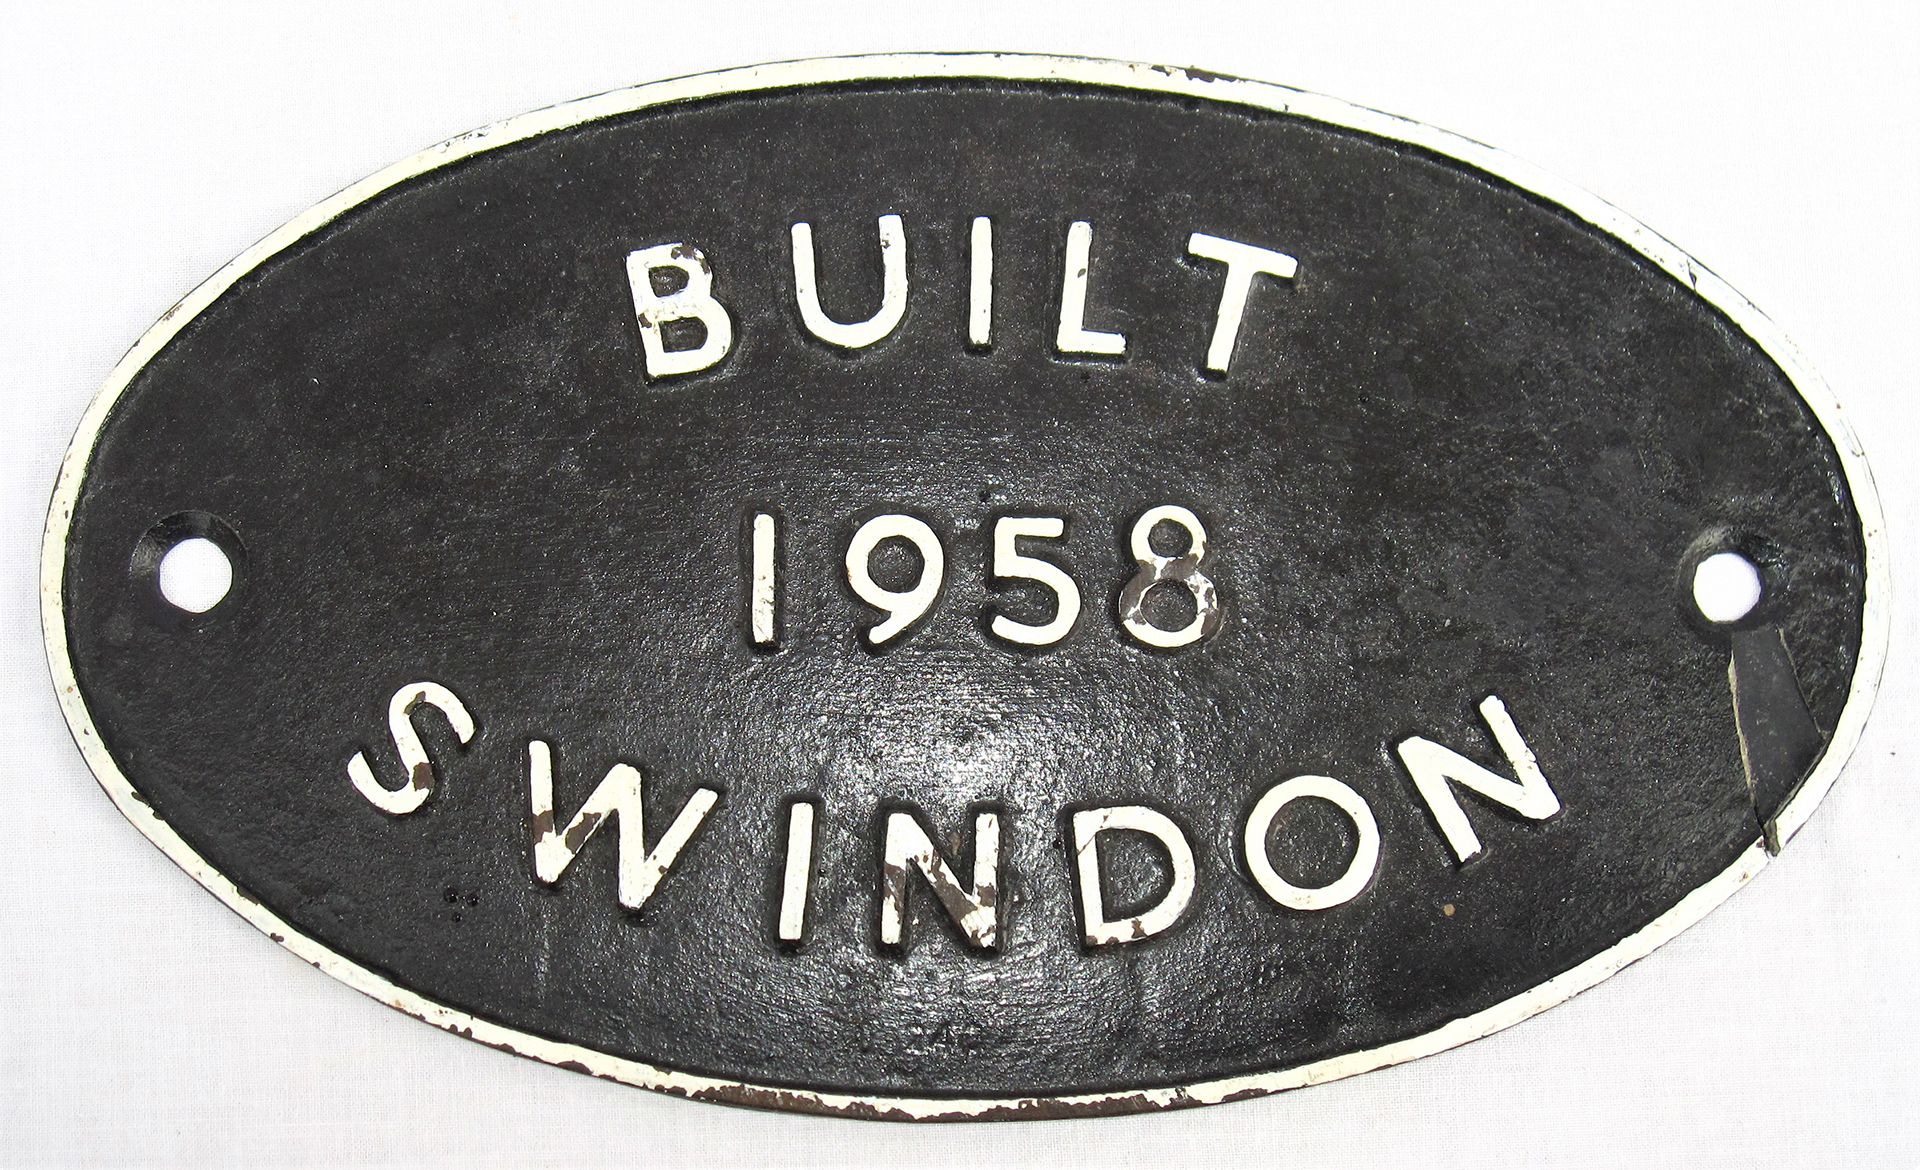 BR worksplate. Built 1958 SWINDON. Repair to right hand bolt hole